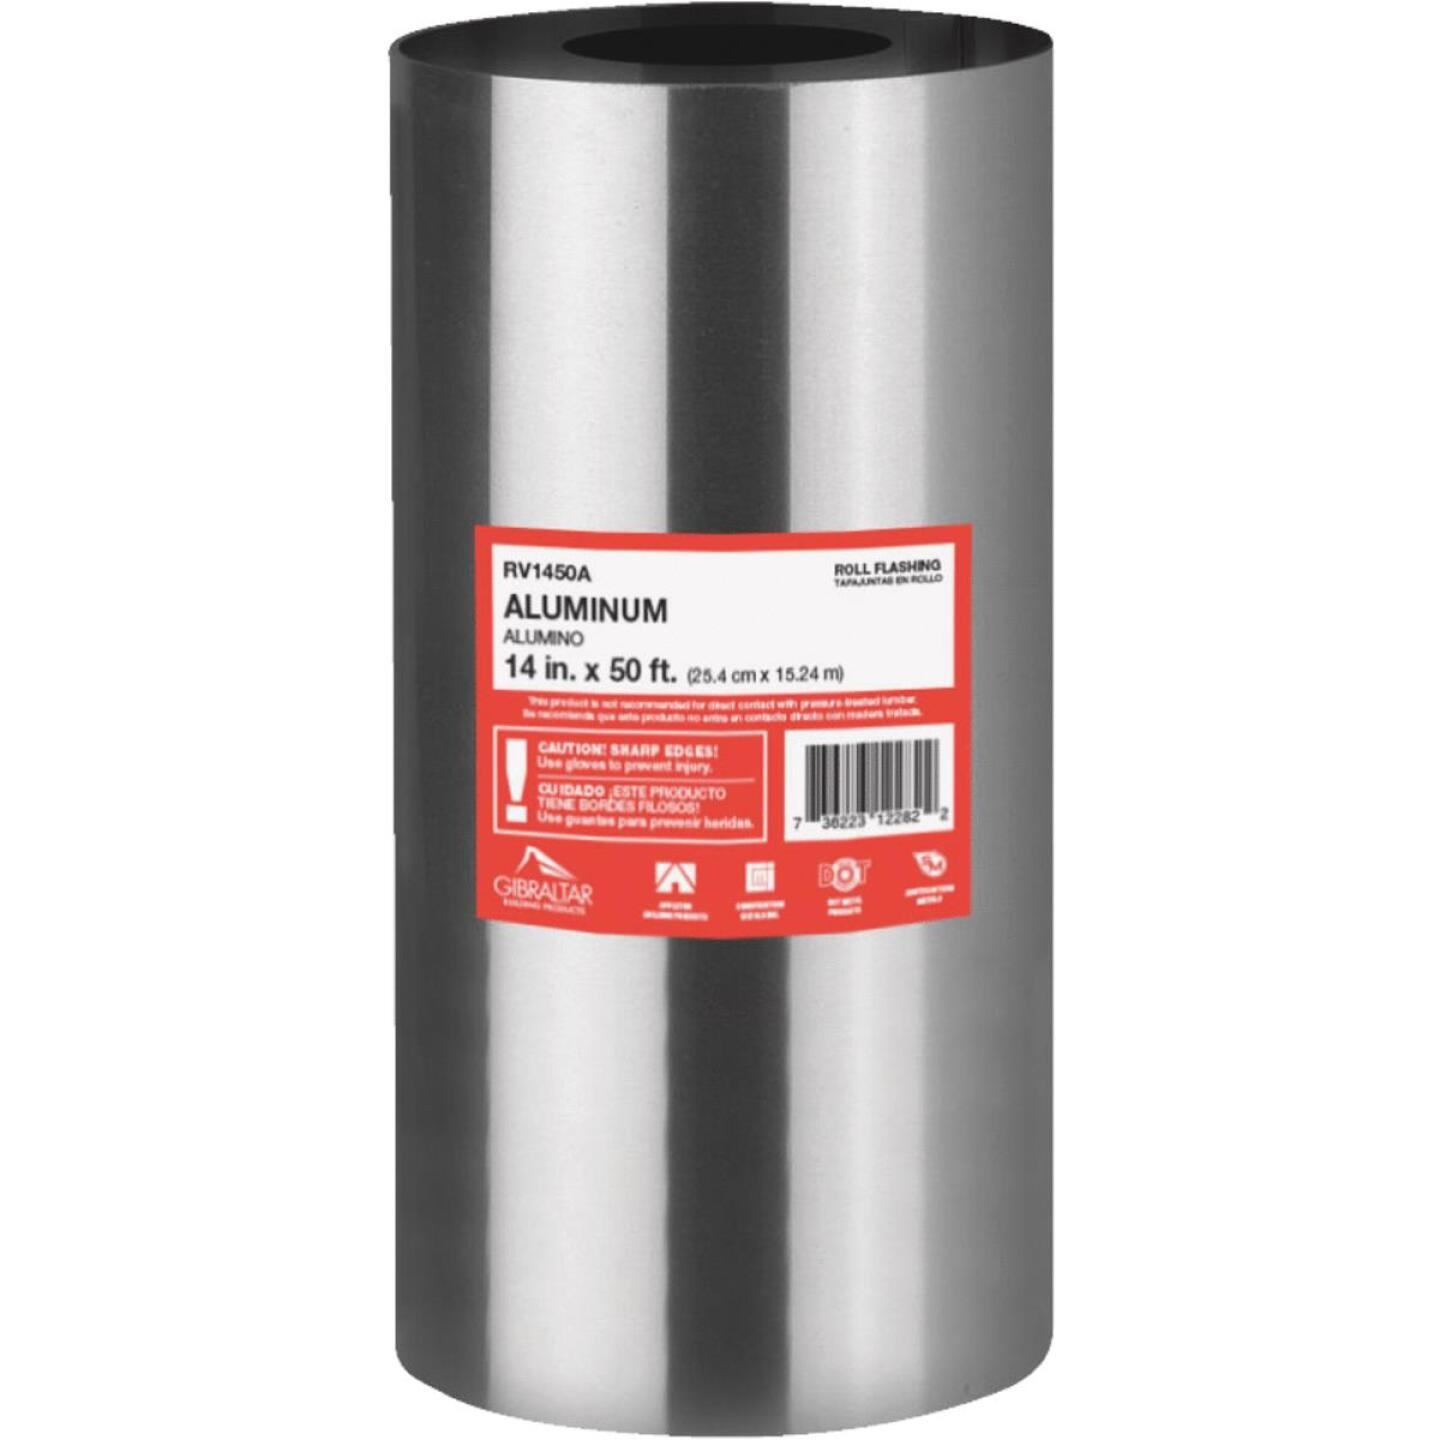 NorWesco 14 In. x 50 Ft. Mill Aluminum Roll Valley Flashing Image 1